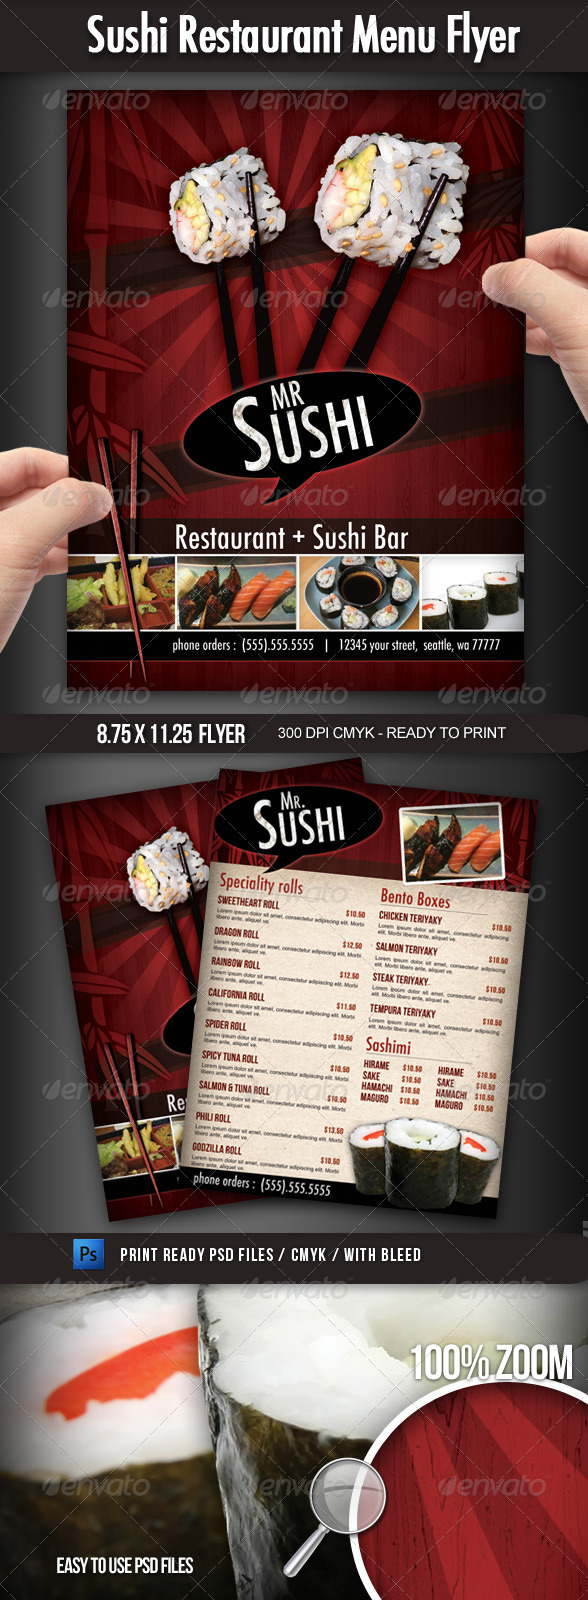 Sushi Restaurant Menu Flyer